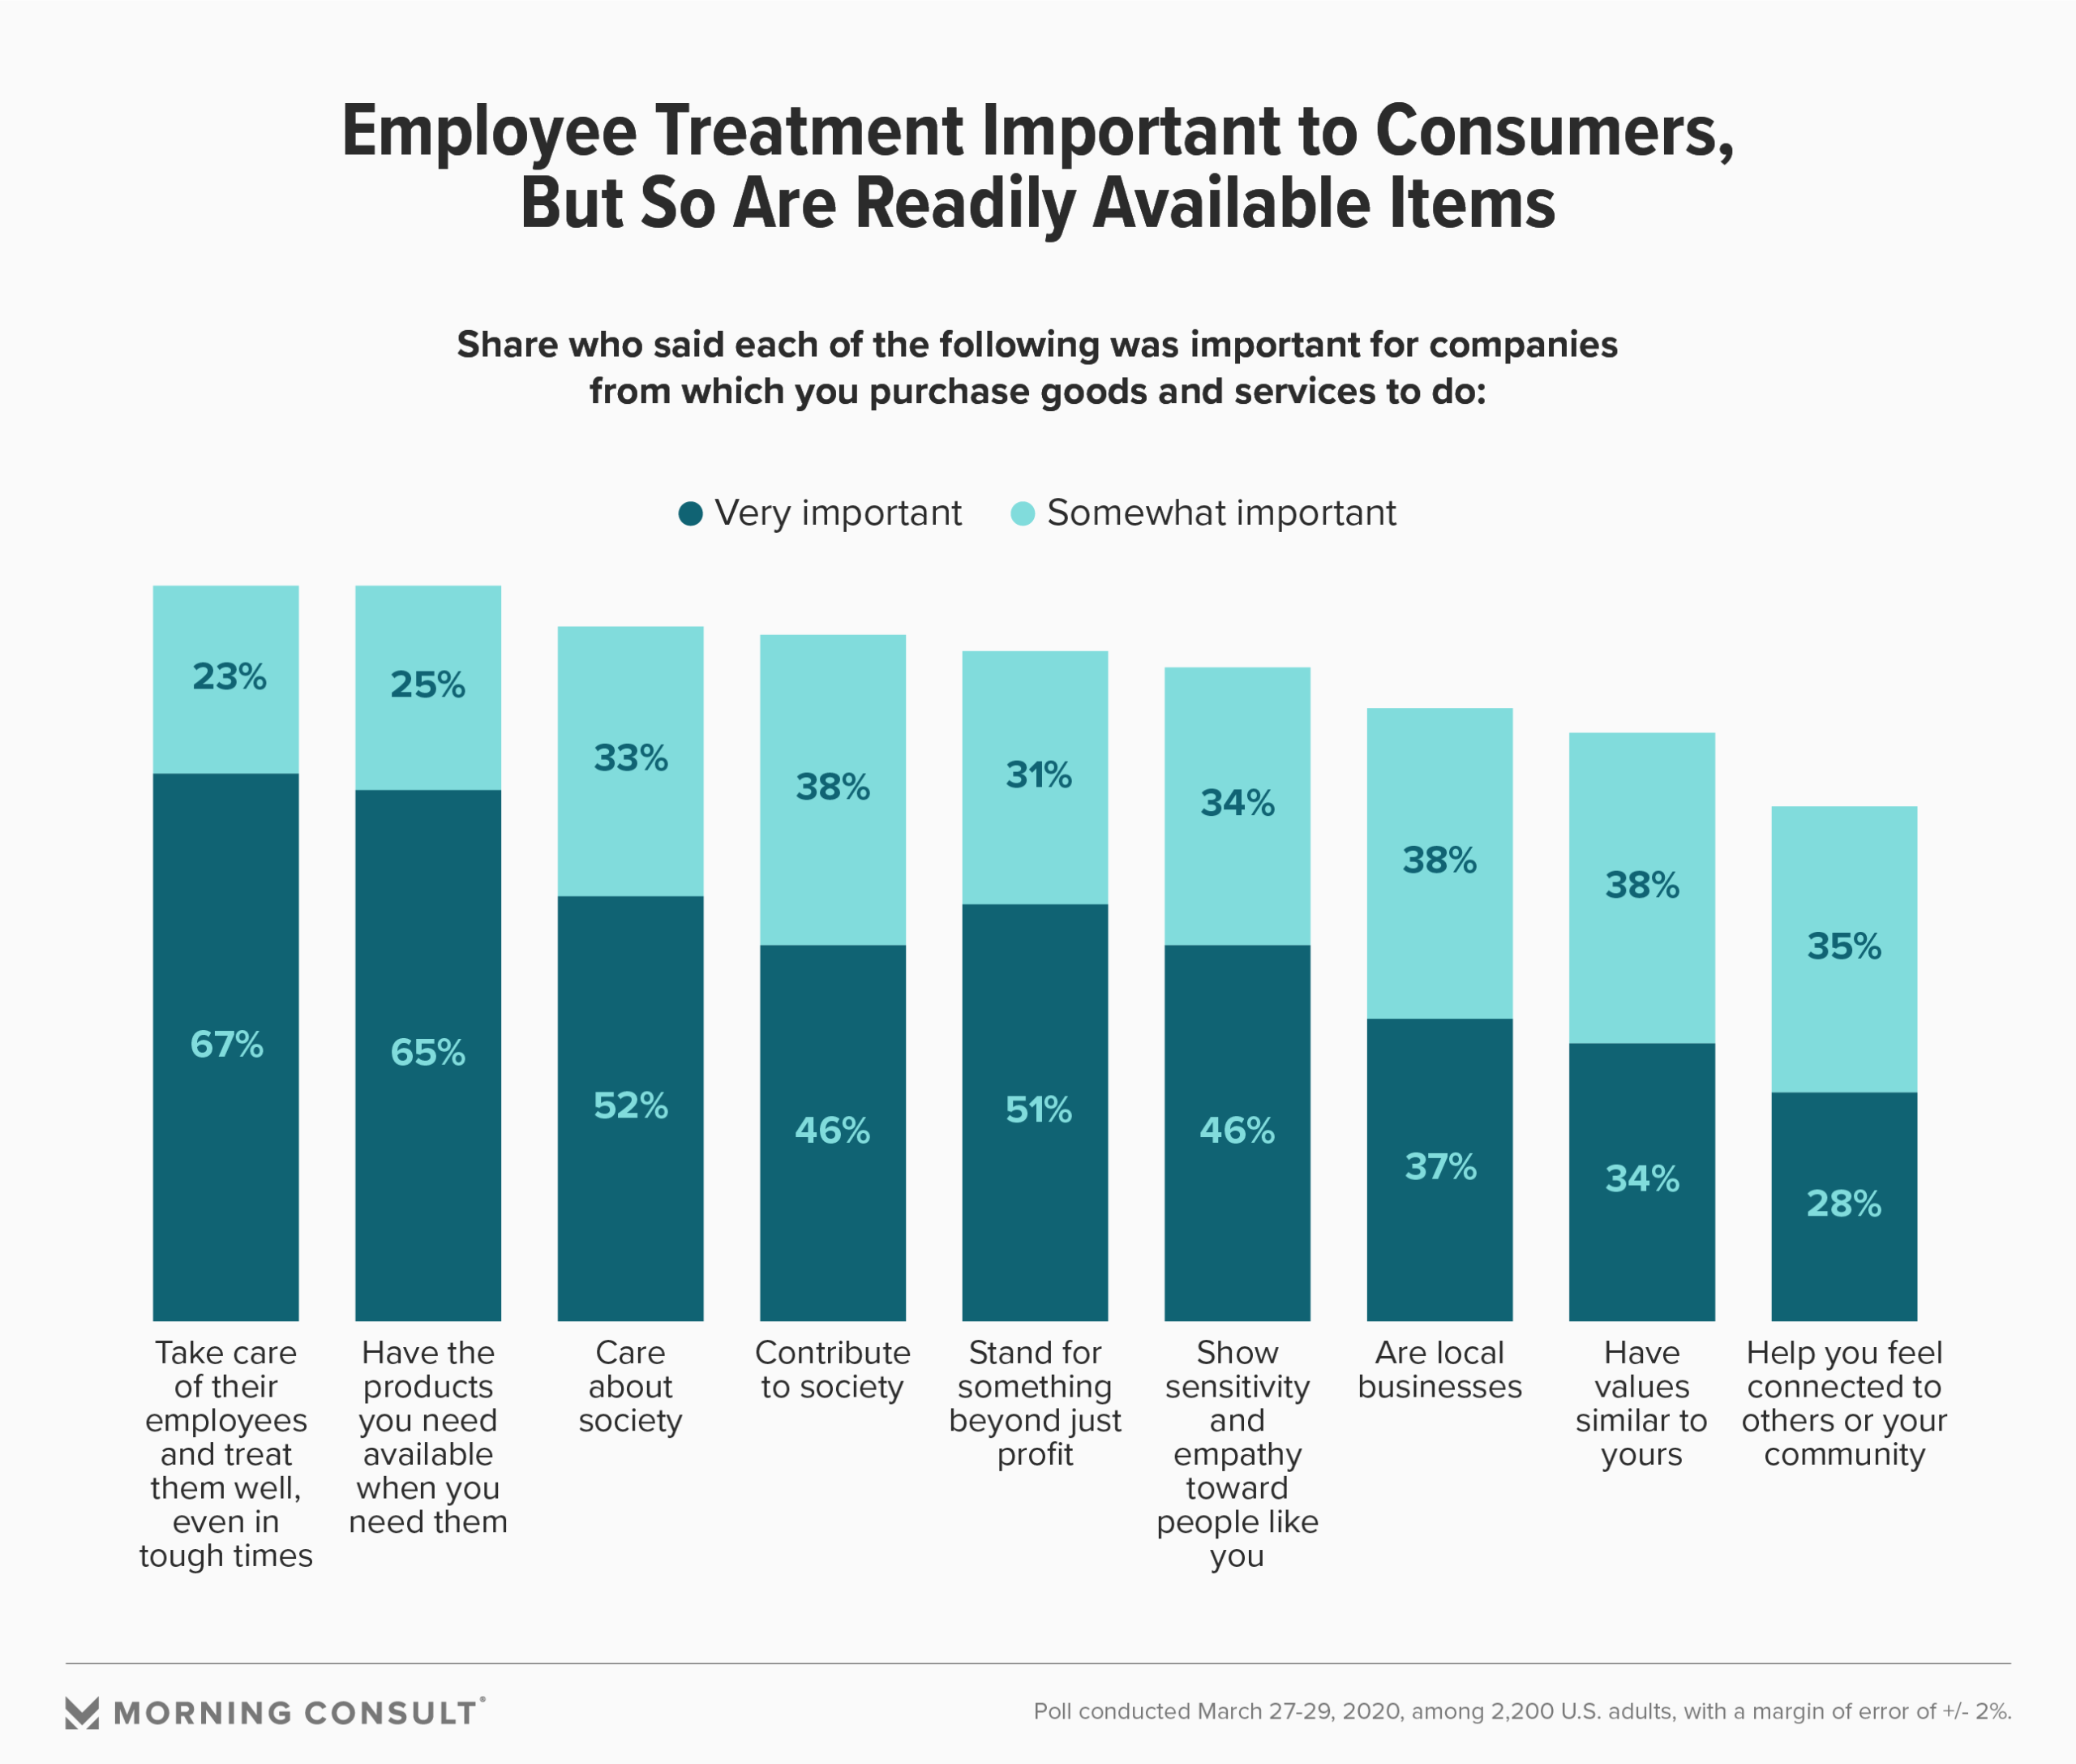 employee treatment important to consumers